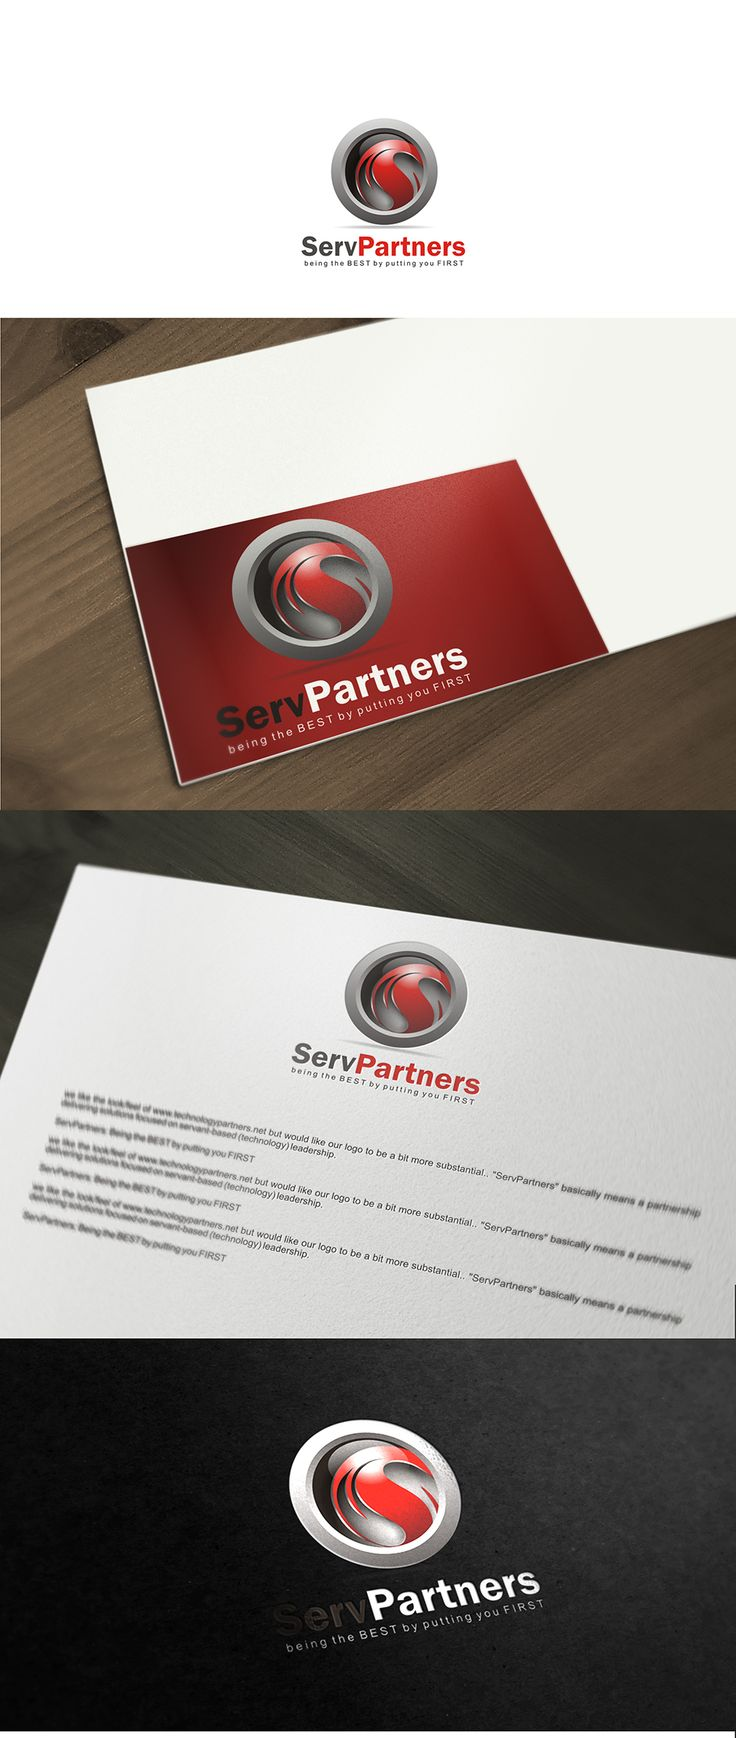 New logo and business card wanted for ServPartners